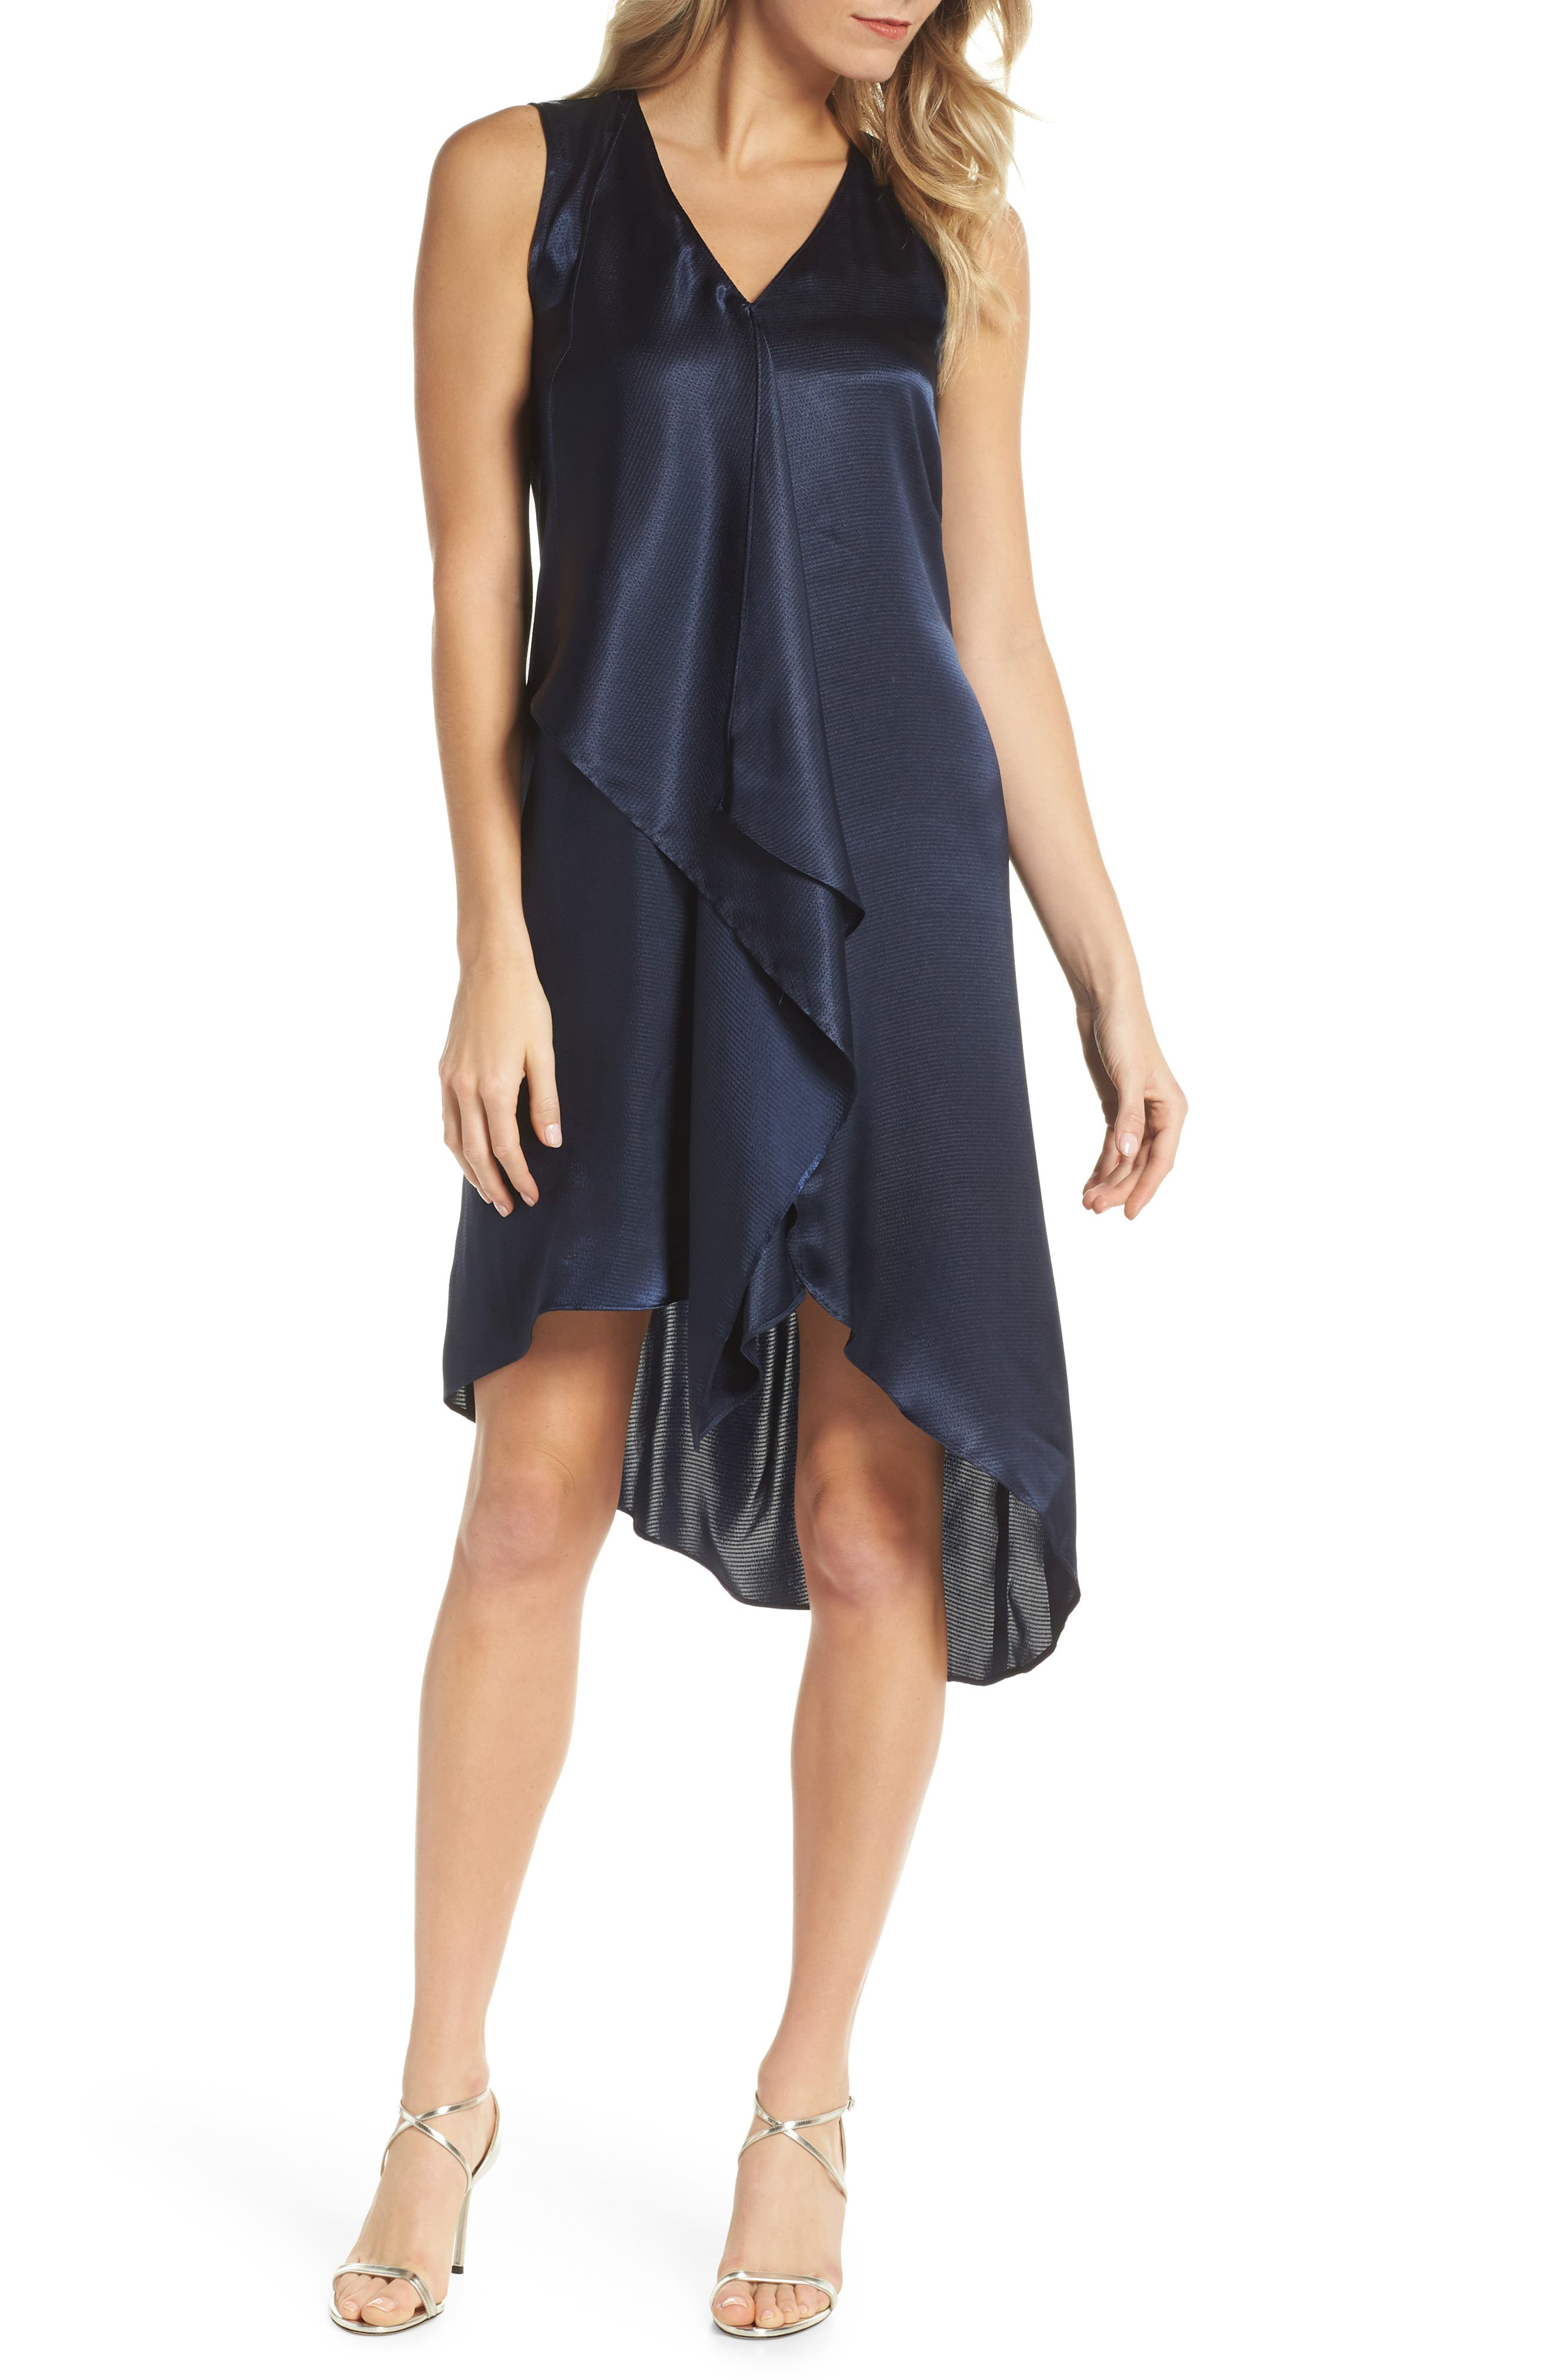 Alternate Image 1 Selected - Adrianna Papell Asymmetrical Sleeveless Trapeze Dress